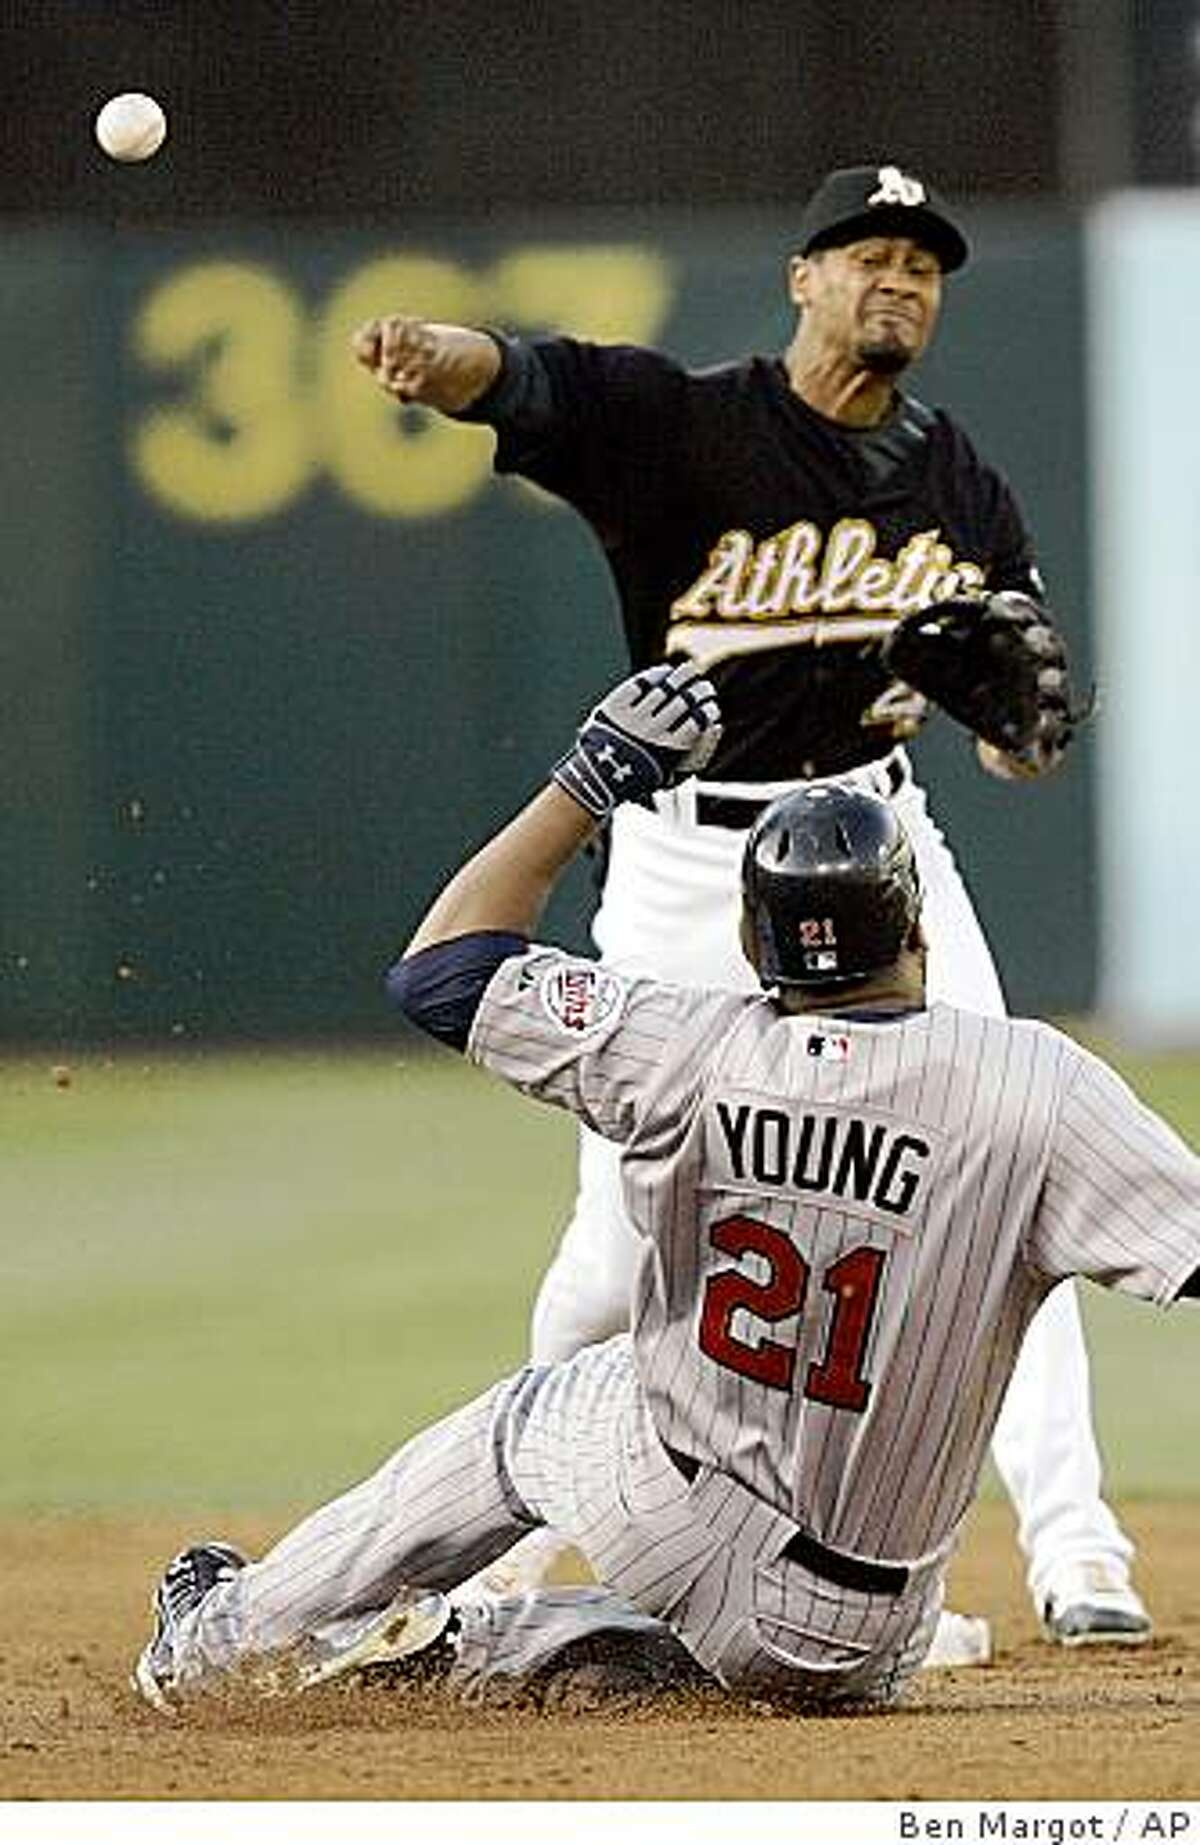 Oakland Athletics second baseman Eric Patterson throws to first base over Minnesota Twins' Delmon Young during the second inning of a baseball game Saturday, Aug. 30, 2008, in Oakland, Calif. Twins' Brendan Harris was safe at first base on the failed double play. (AP Photo/Ben Margot)